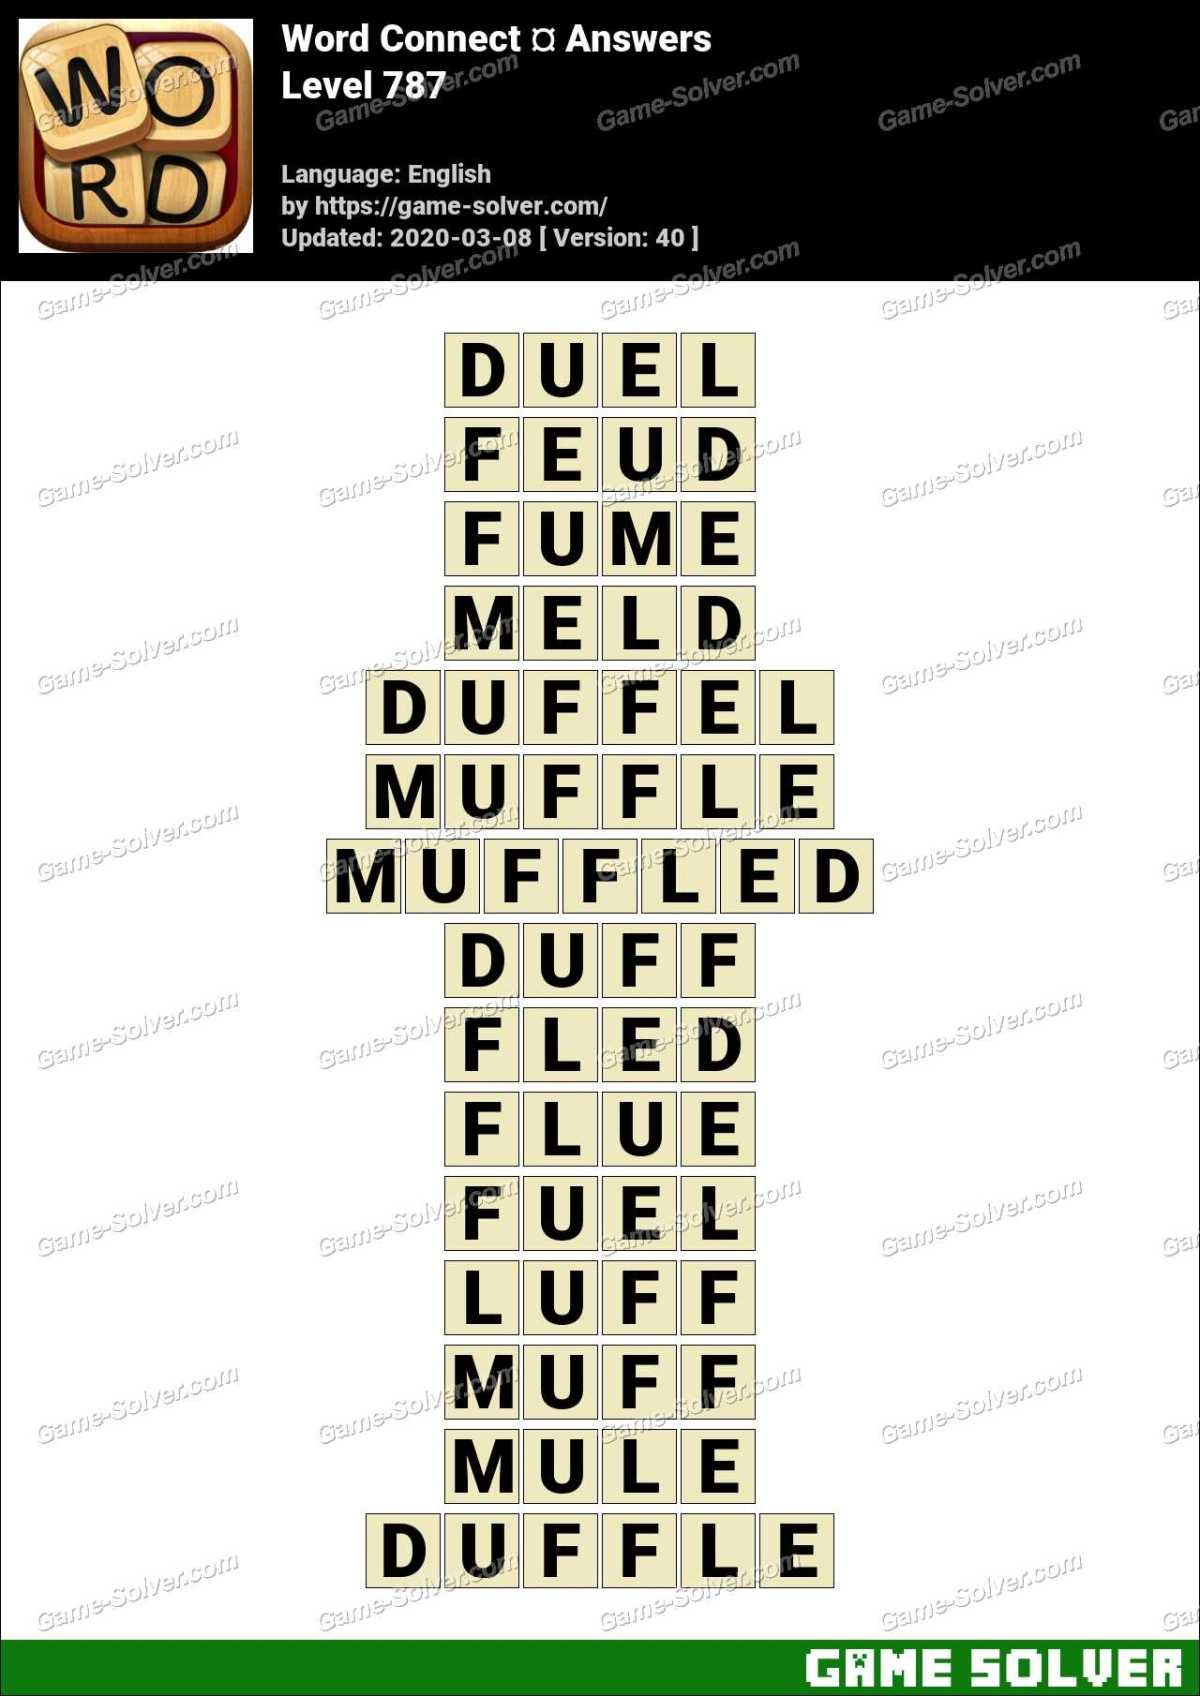 Word Connect Level 787 Answers